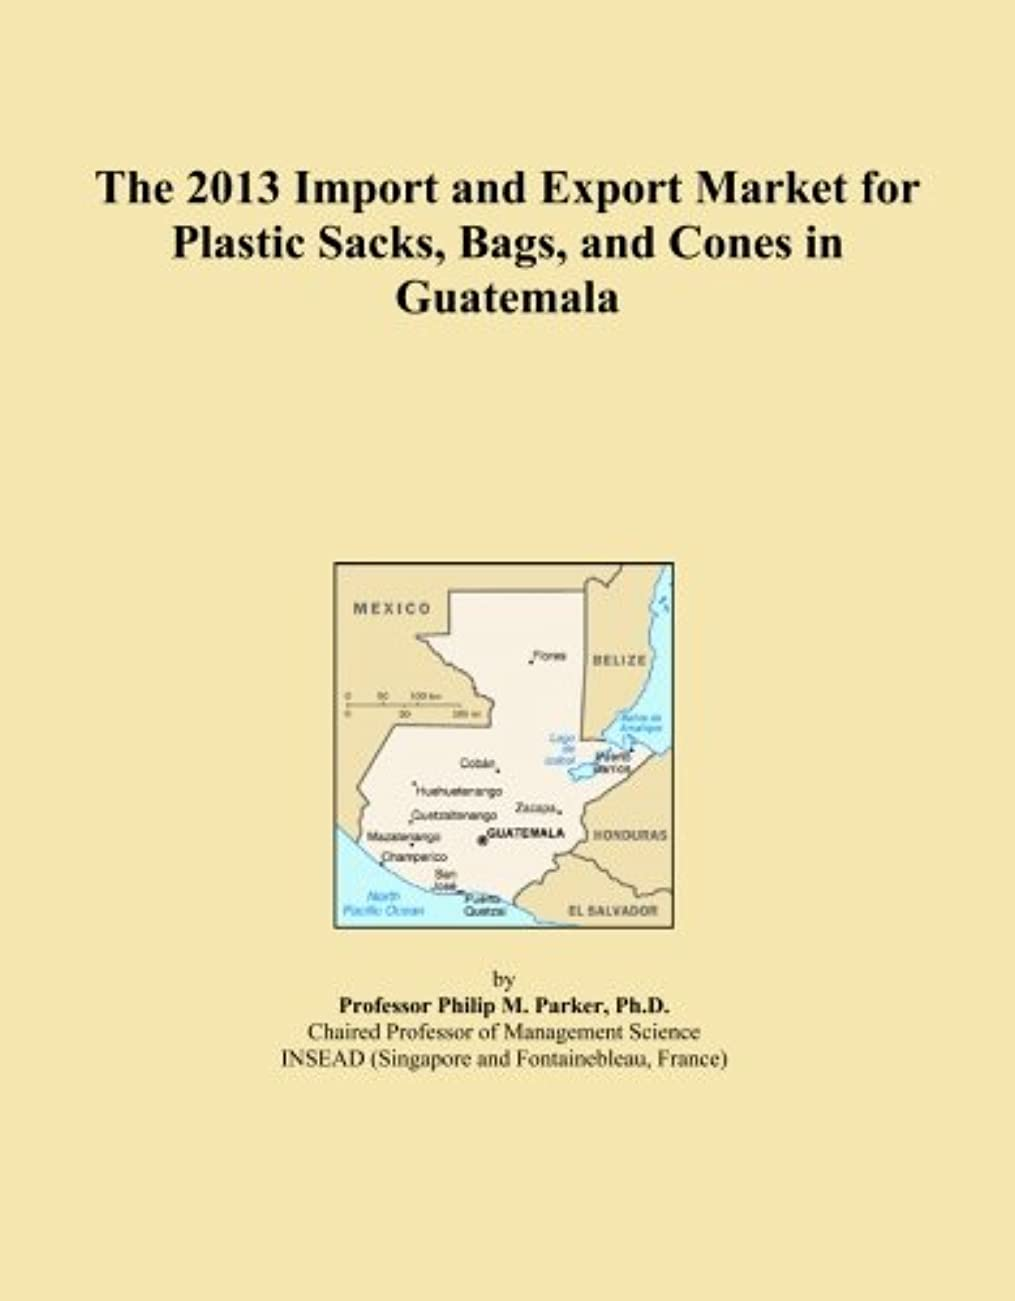 修理工良さ気まぐれなThe 2013 Import and Export Market for Plastic Sacks, Bags, and Cones in Guatemala